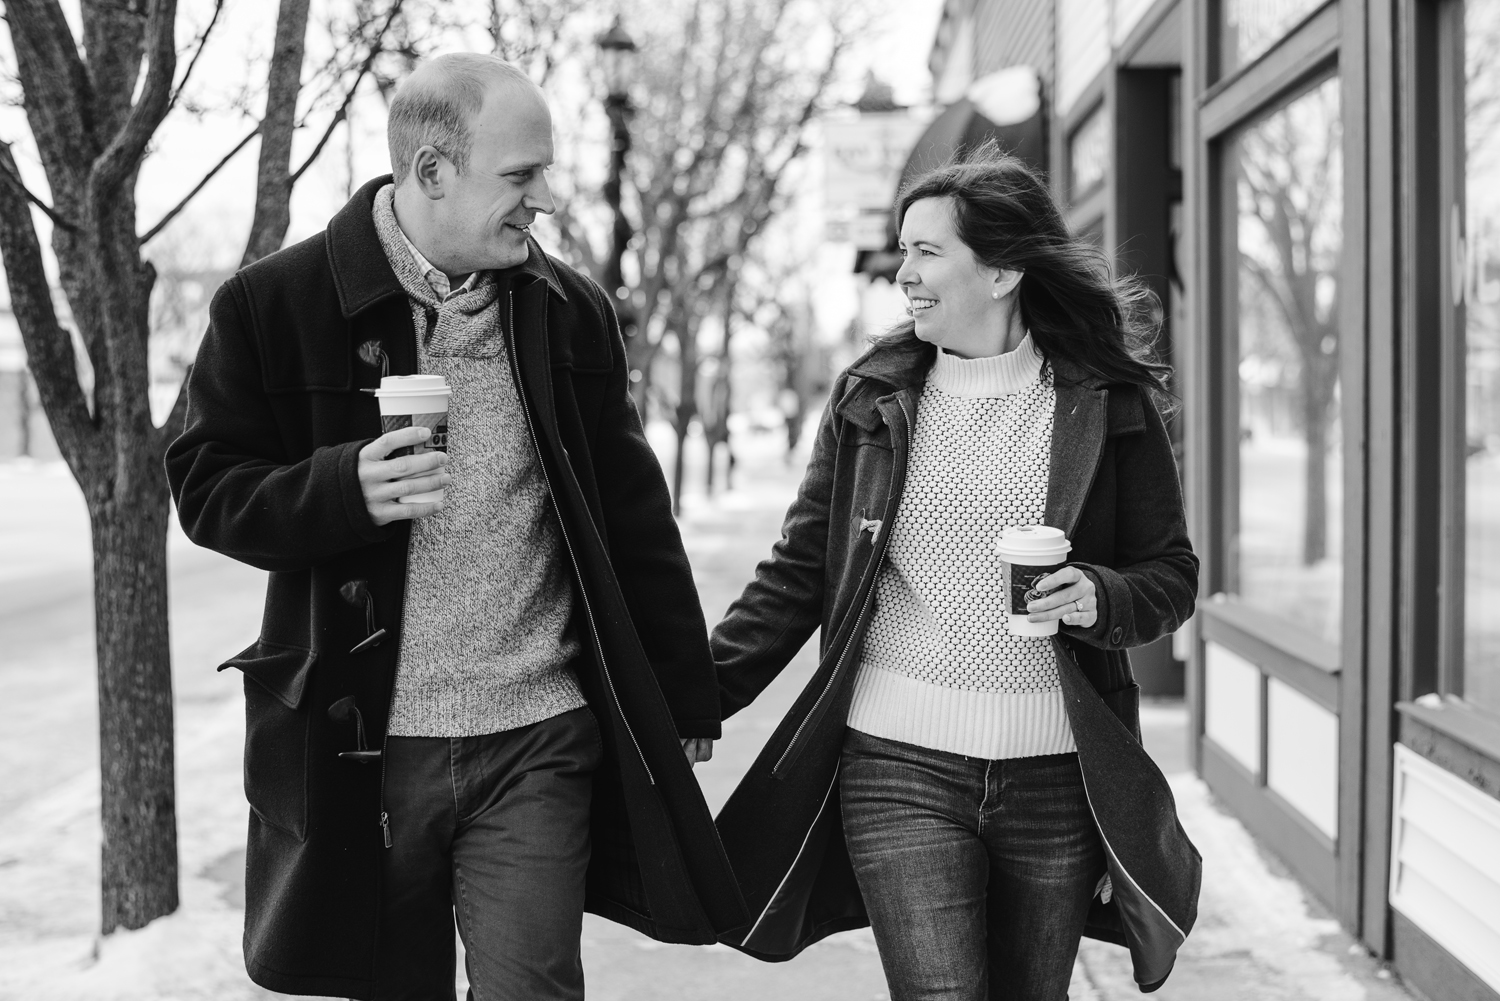 frankfort-michigan-winter-engagement-session (11).jpg